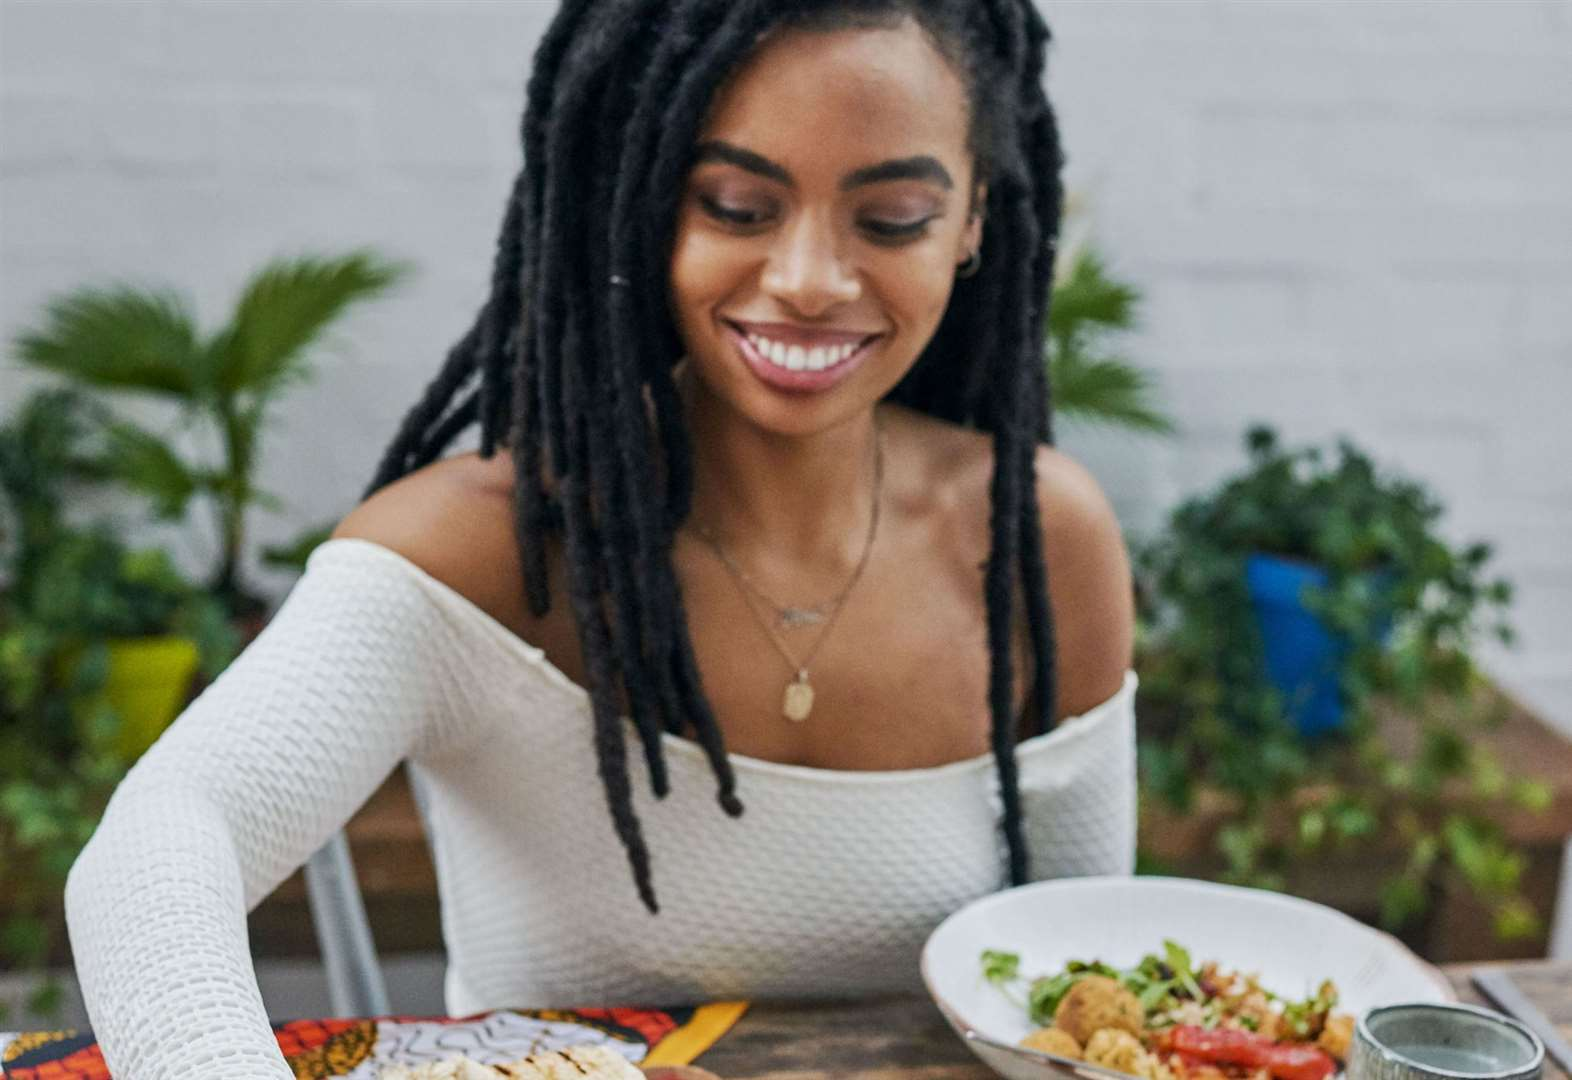 Vegan food with a Caribbean vibe